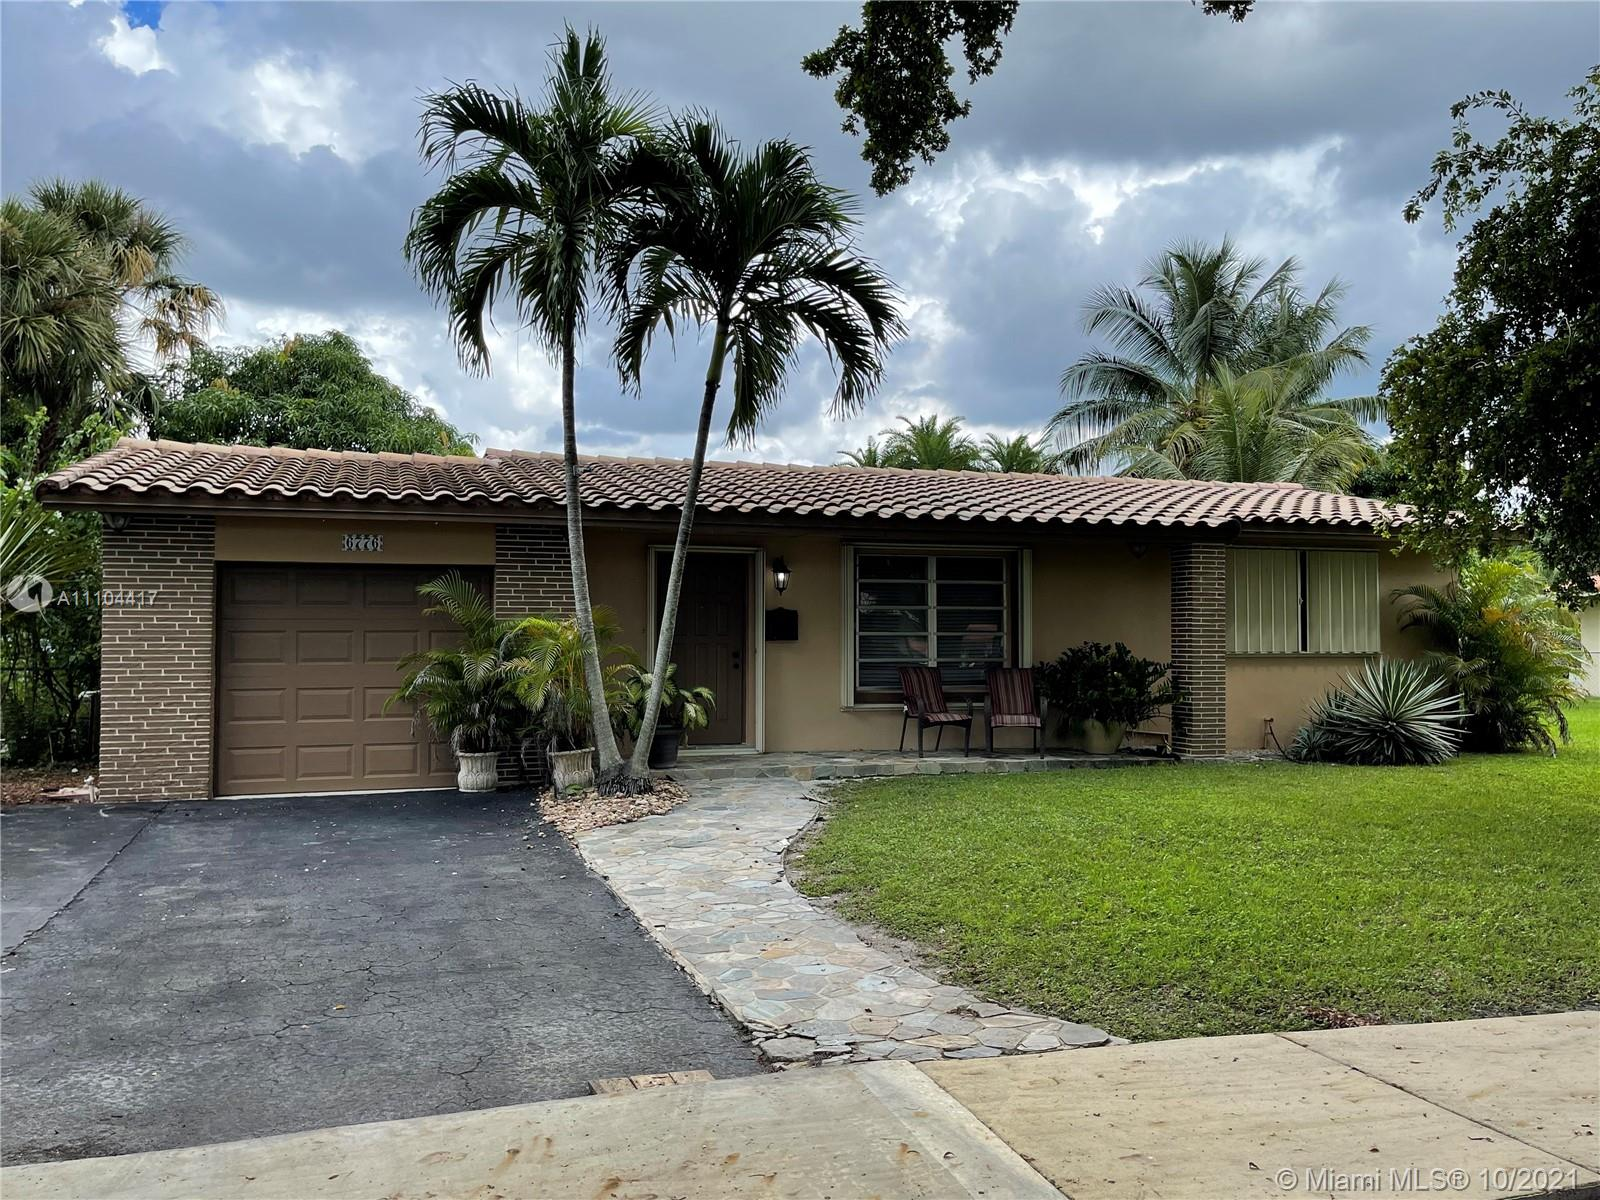 6776 Orchid Dr, Miami Lakes, Florida 33014